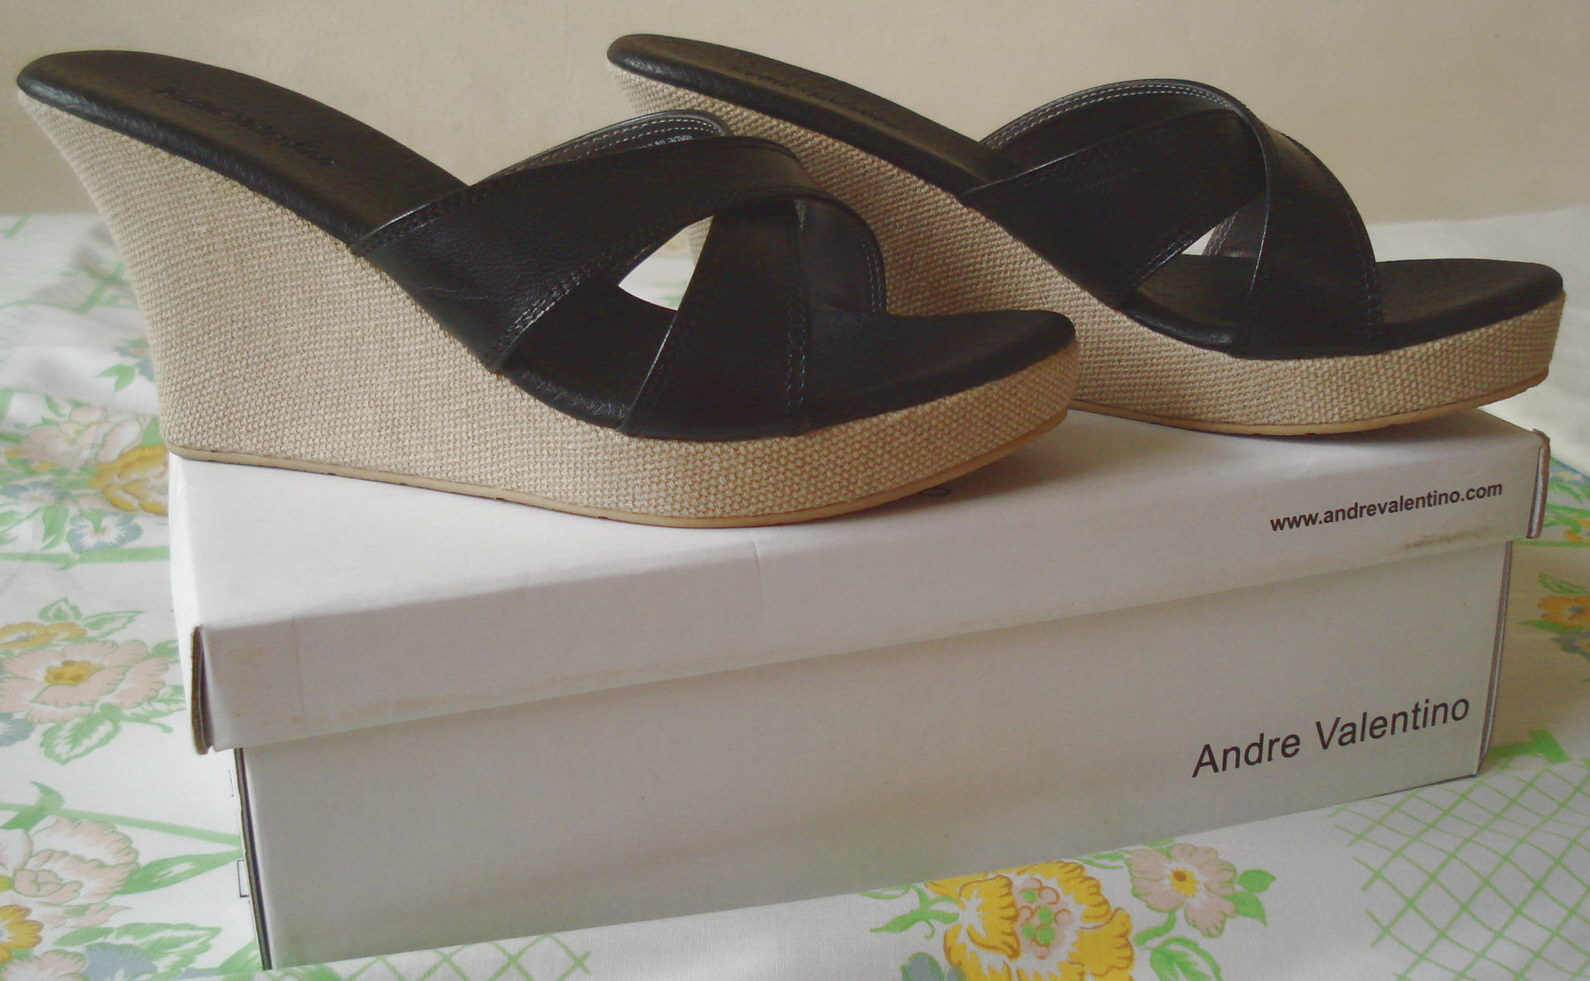 Knick-knacks of Life: Black Wedges from Andre Valentino